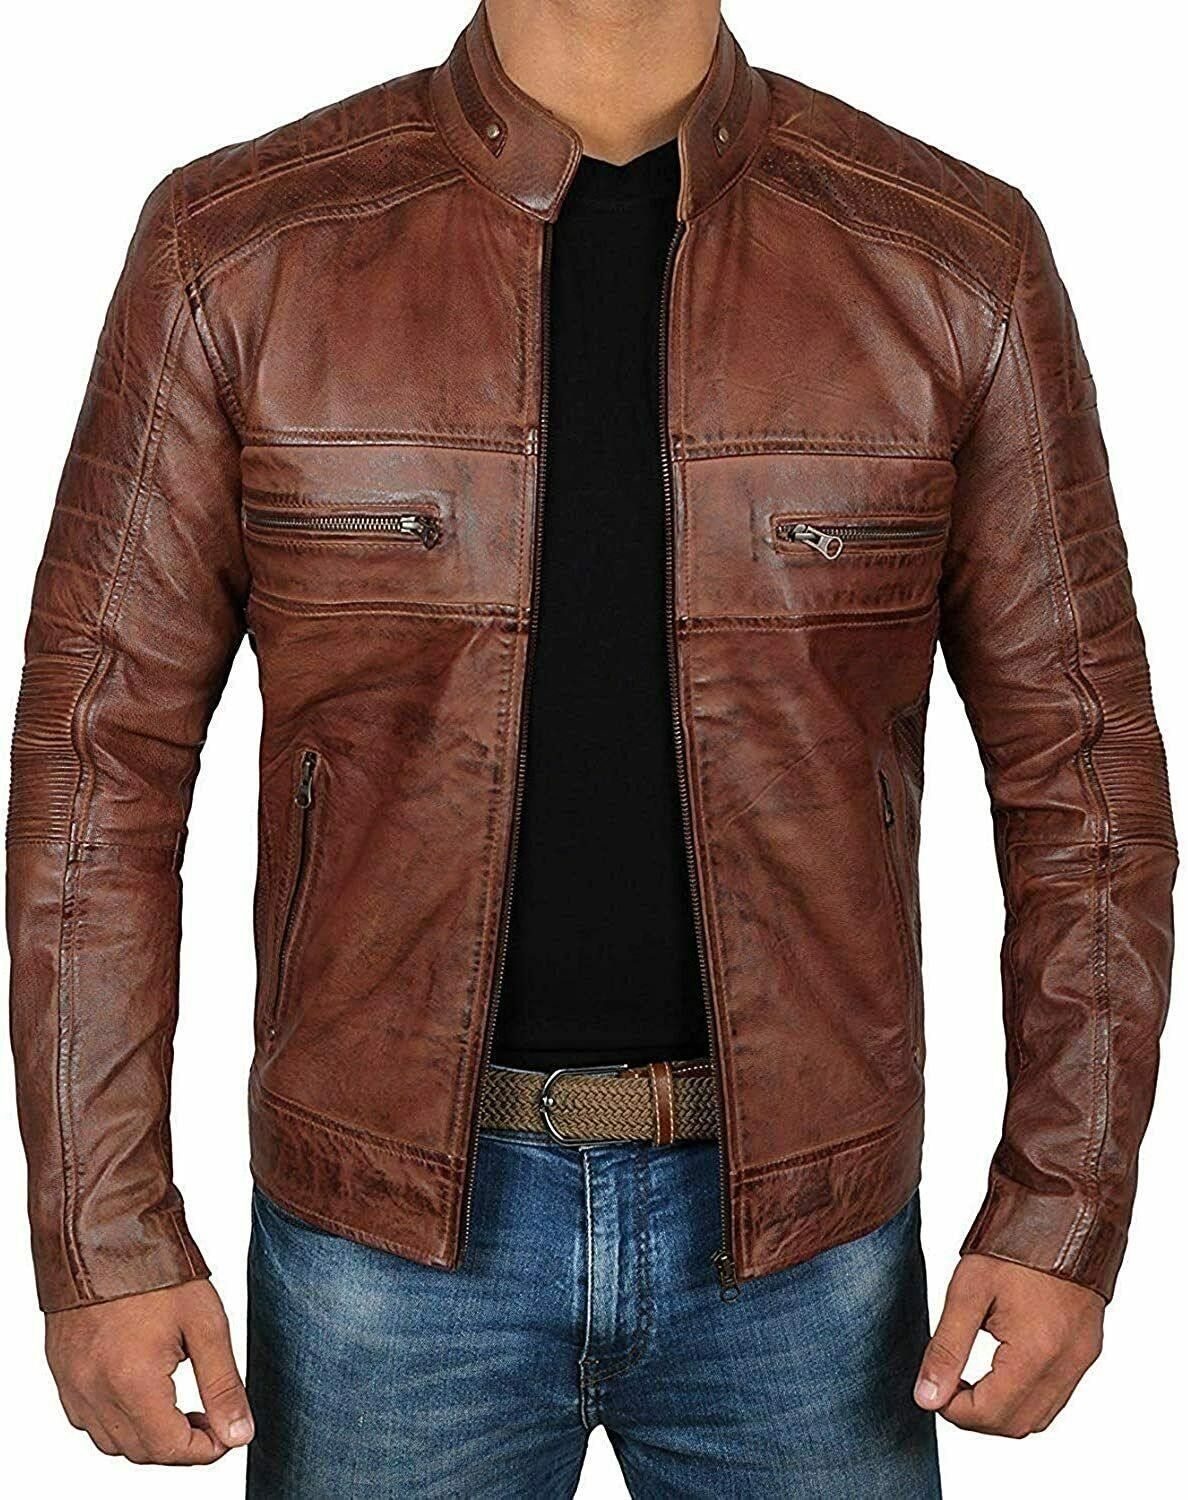 New Men/'s Slim Jacket Casual Motor Jacket Coat Outerwear Motorcycle Tops Quality